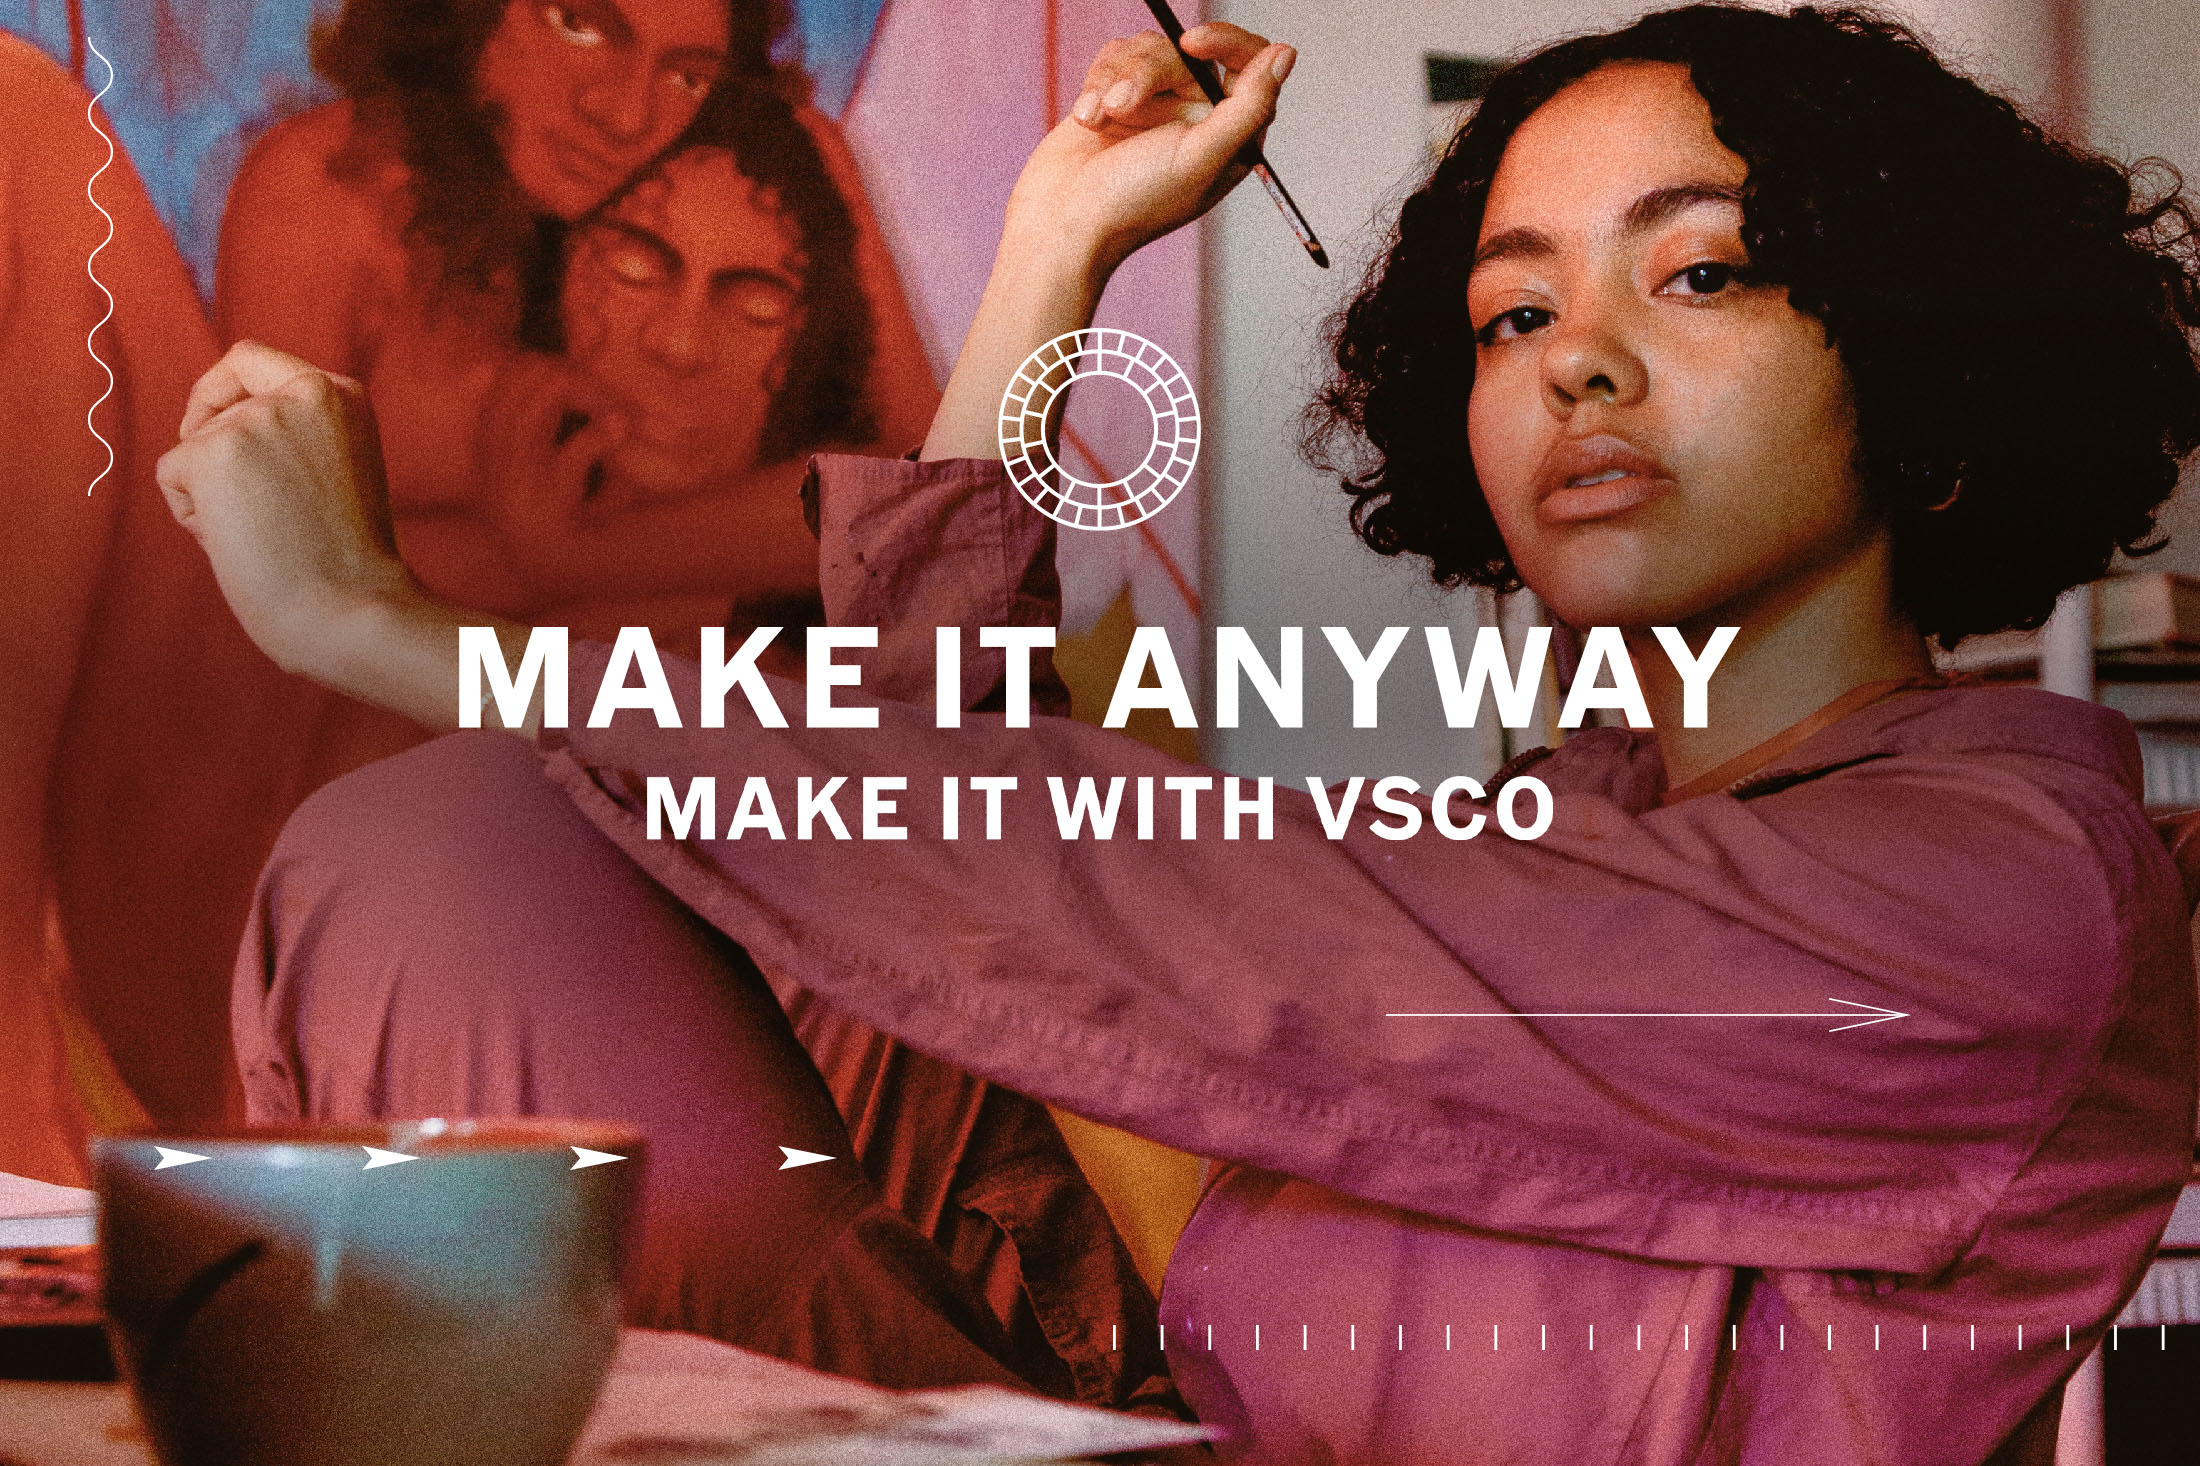 Photo Editing App VSCO and AKQA Profile Gen Z Artists in Documentary-Like Campaign   May 31, 2019 — The videos spotlight up-and-coming young creators from around the world.